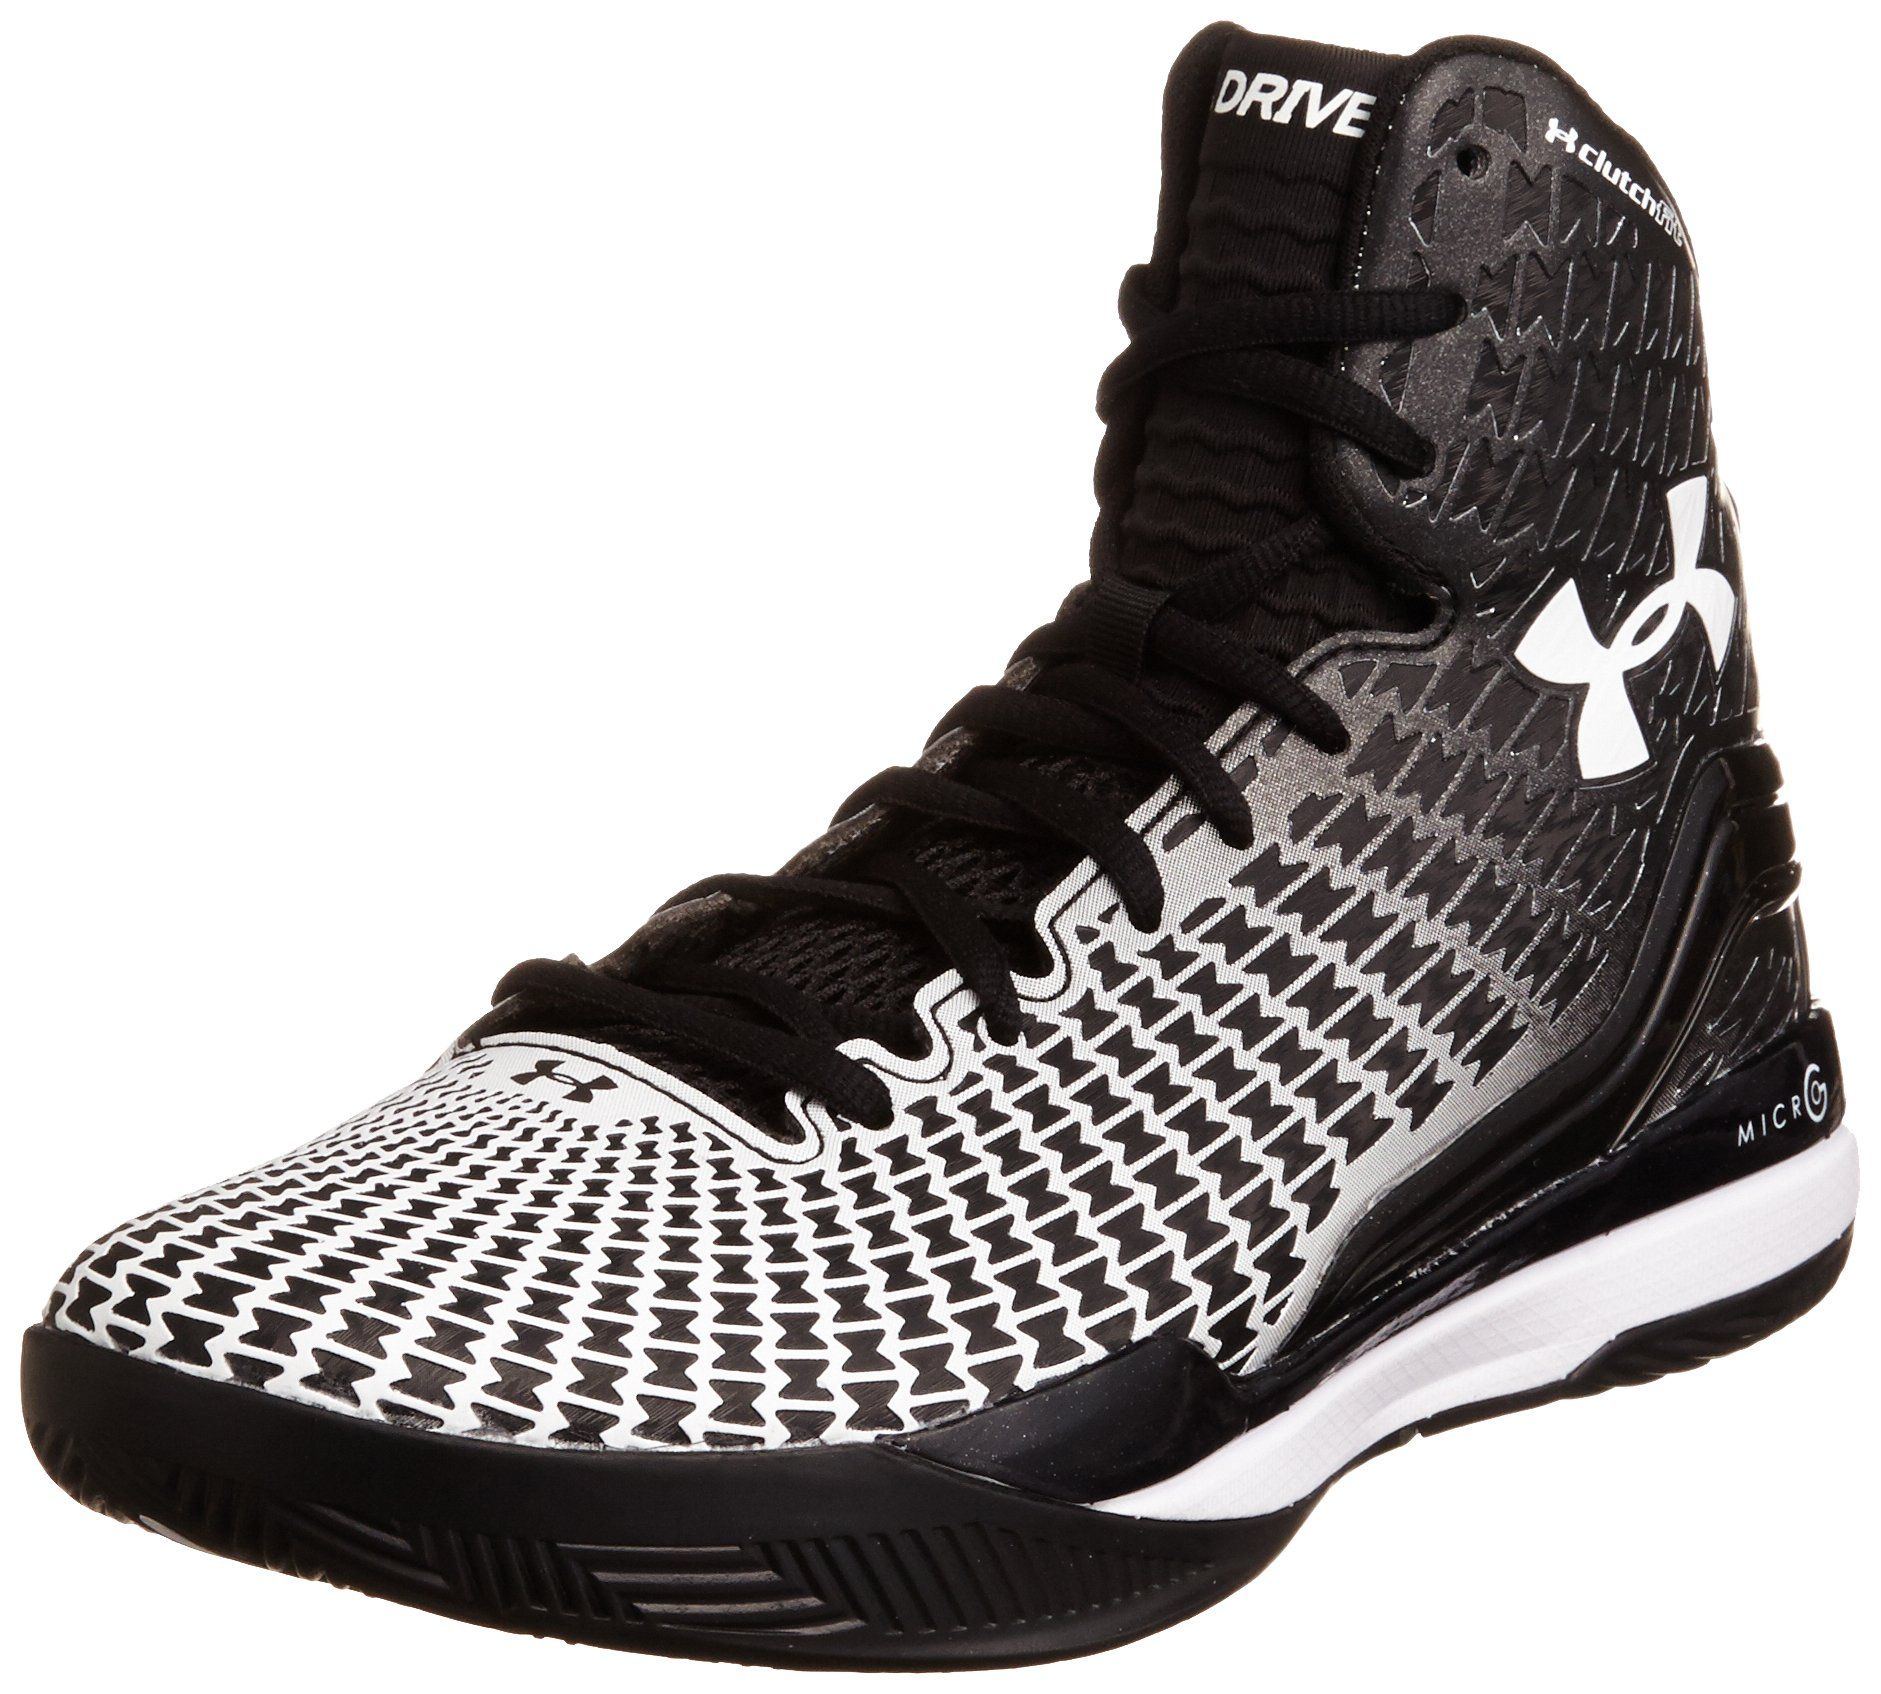 on sale 4ee49 e06ee ... Best Basketball Shoes Of. Under Armour Men s UA ClutchFit™ Drive Mid